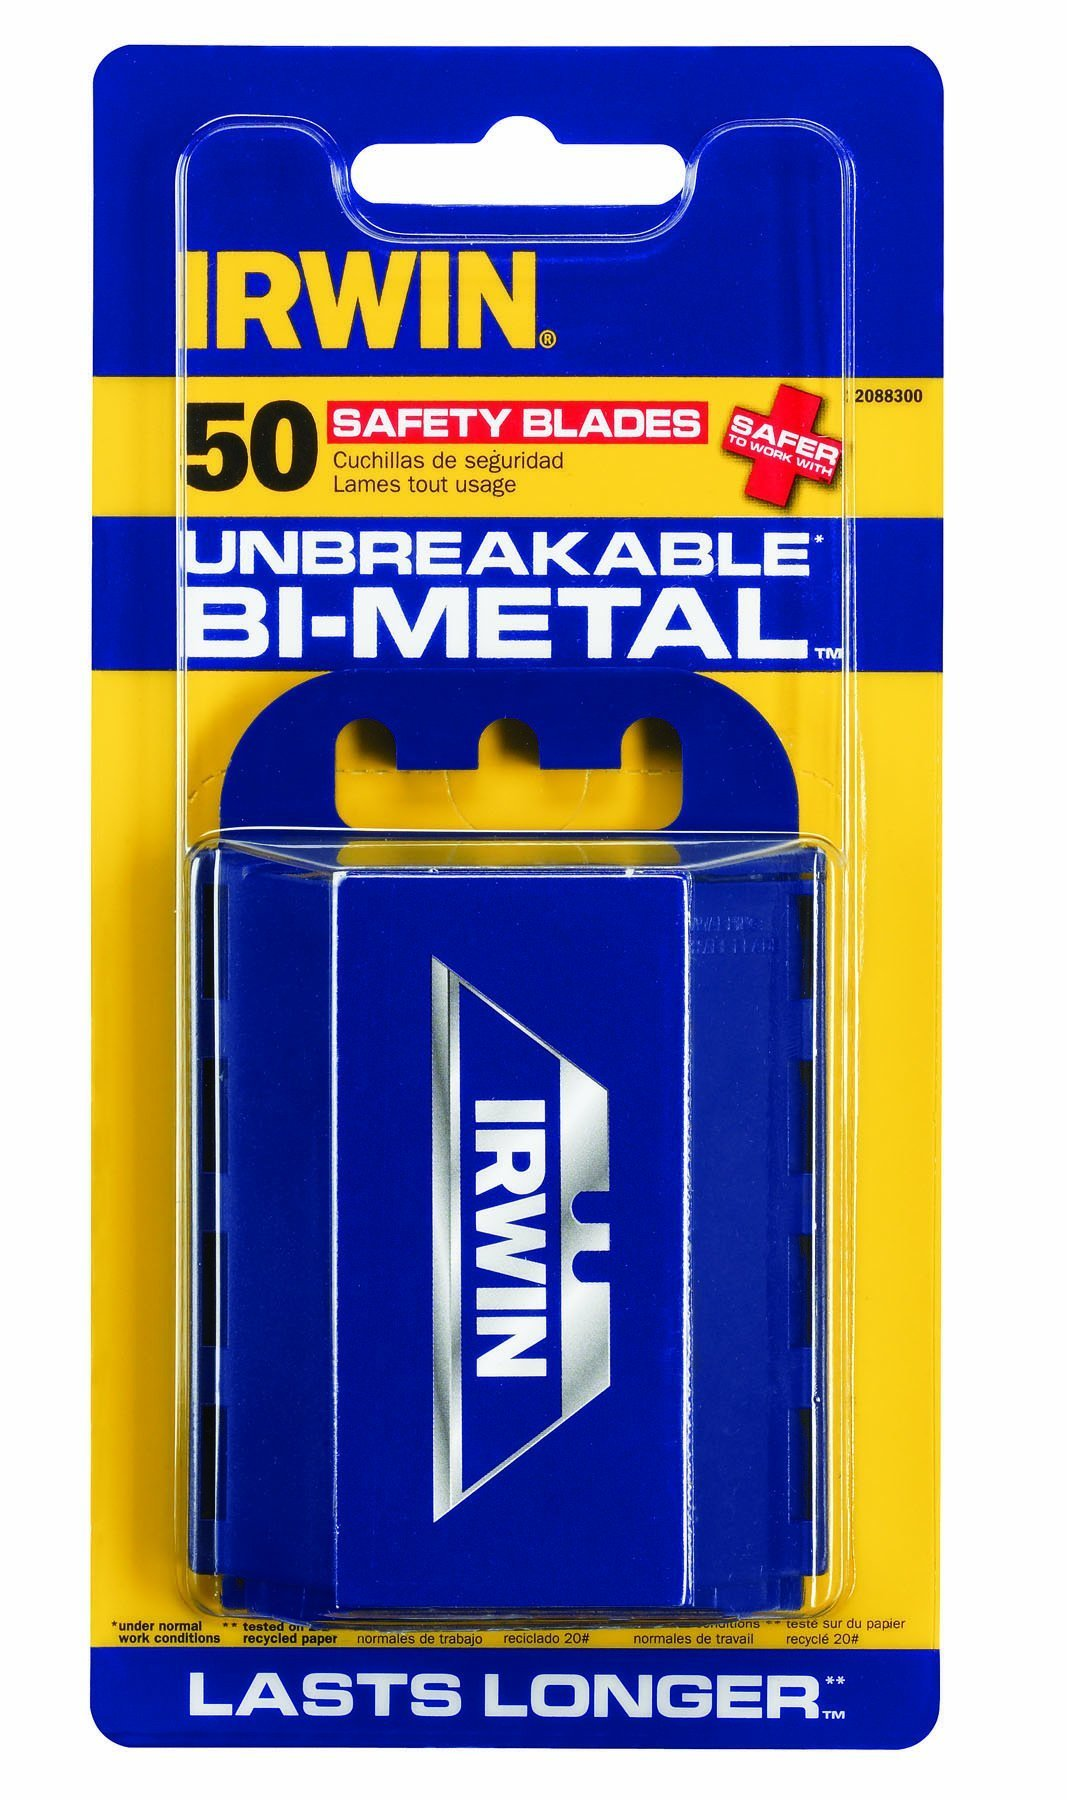 IRWIN 2088300 Safety Knife Blades, 50 Pack, Blue